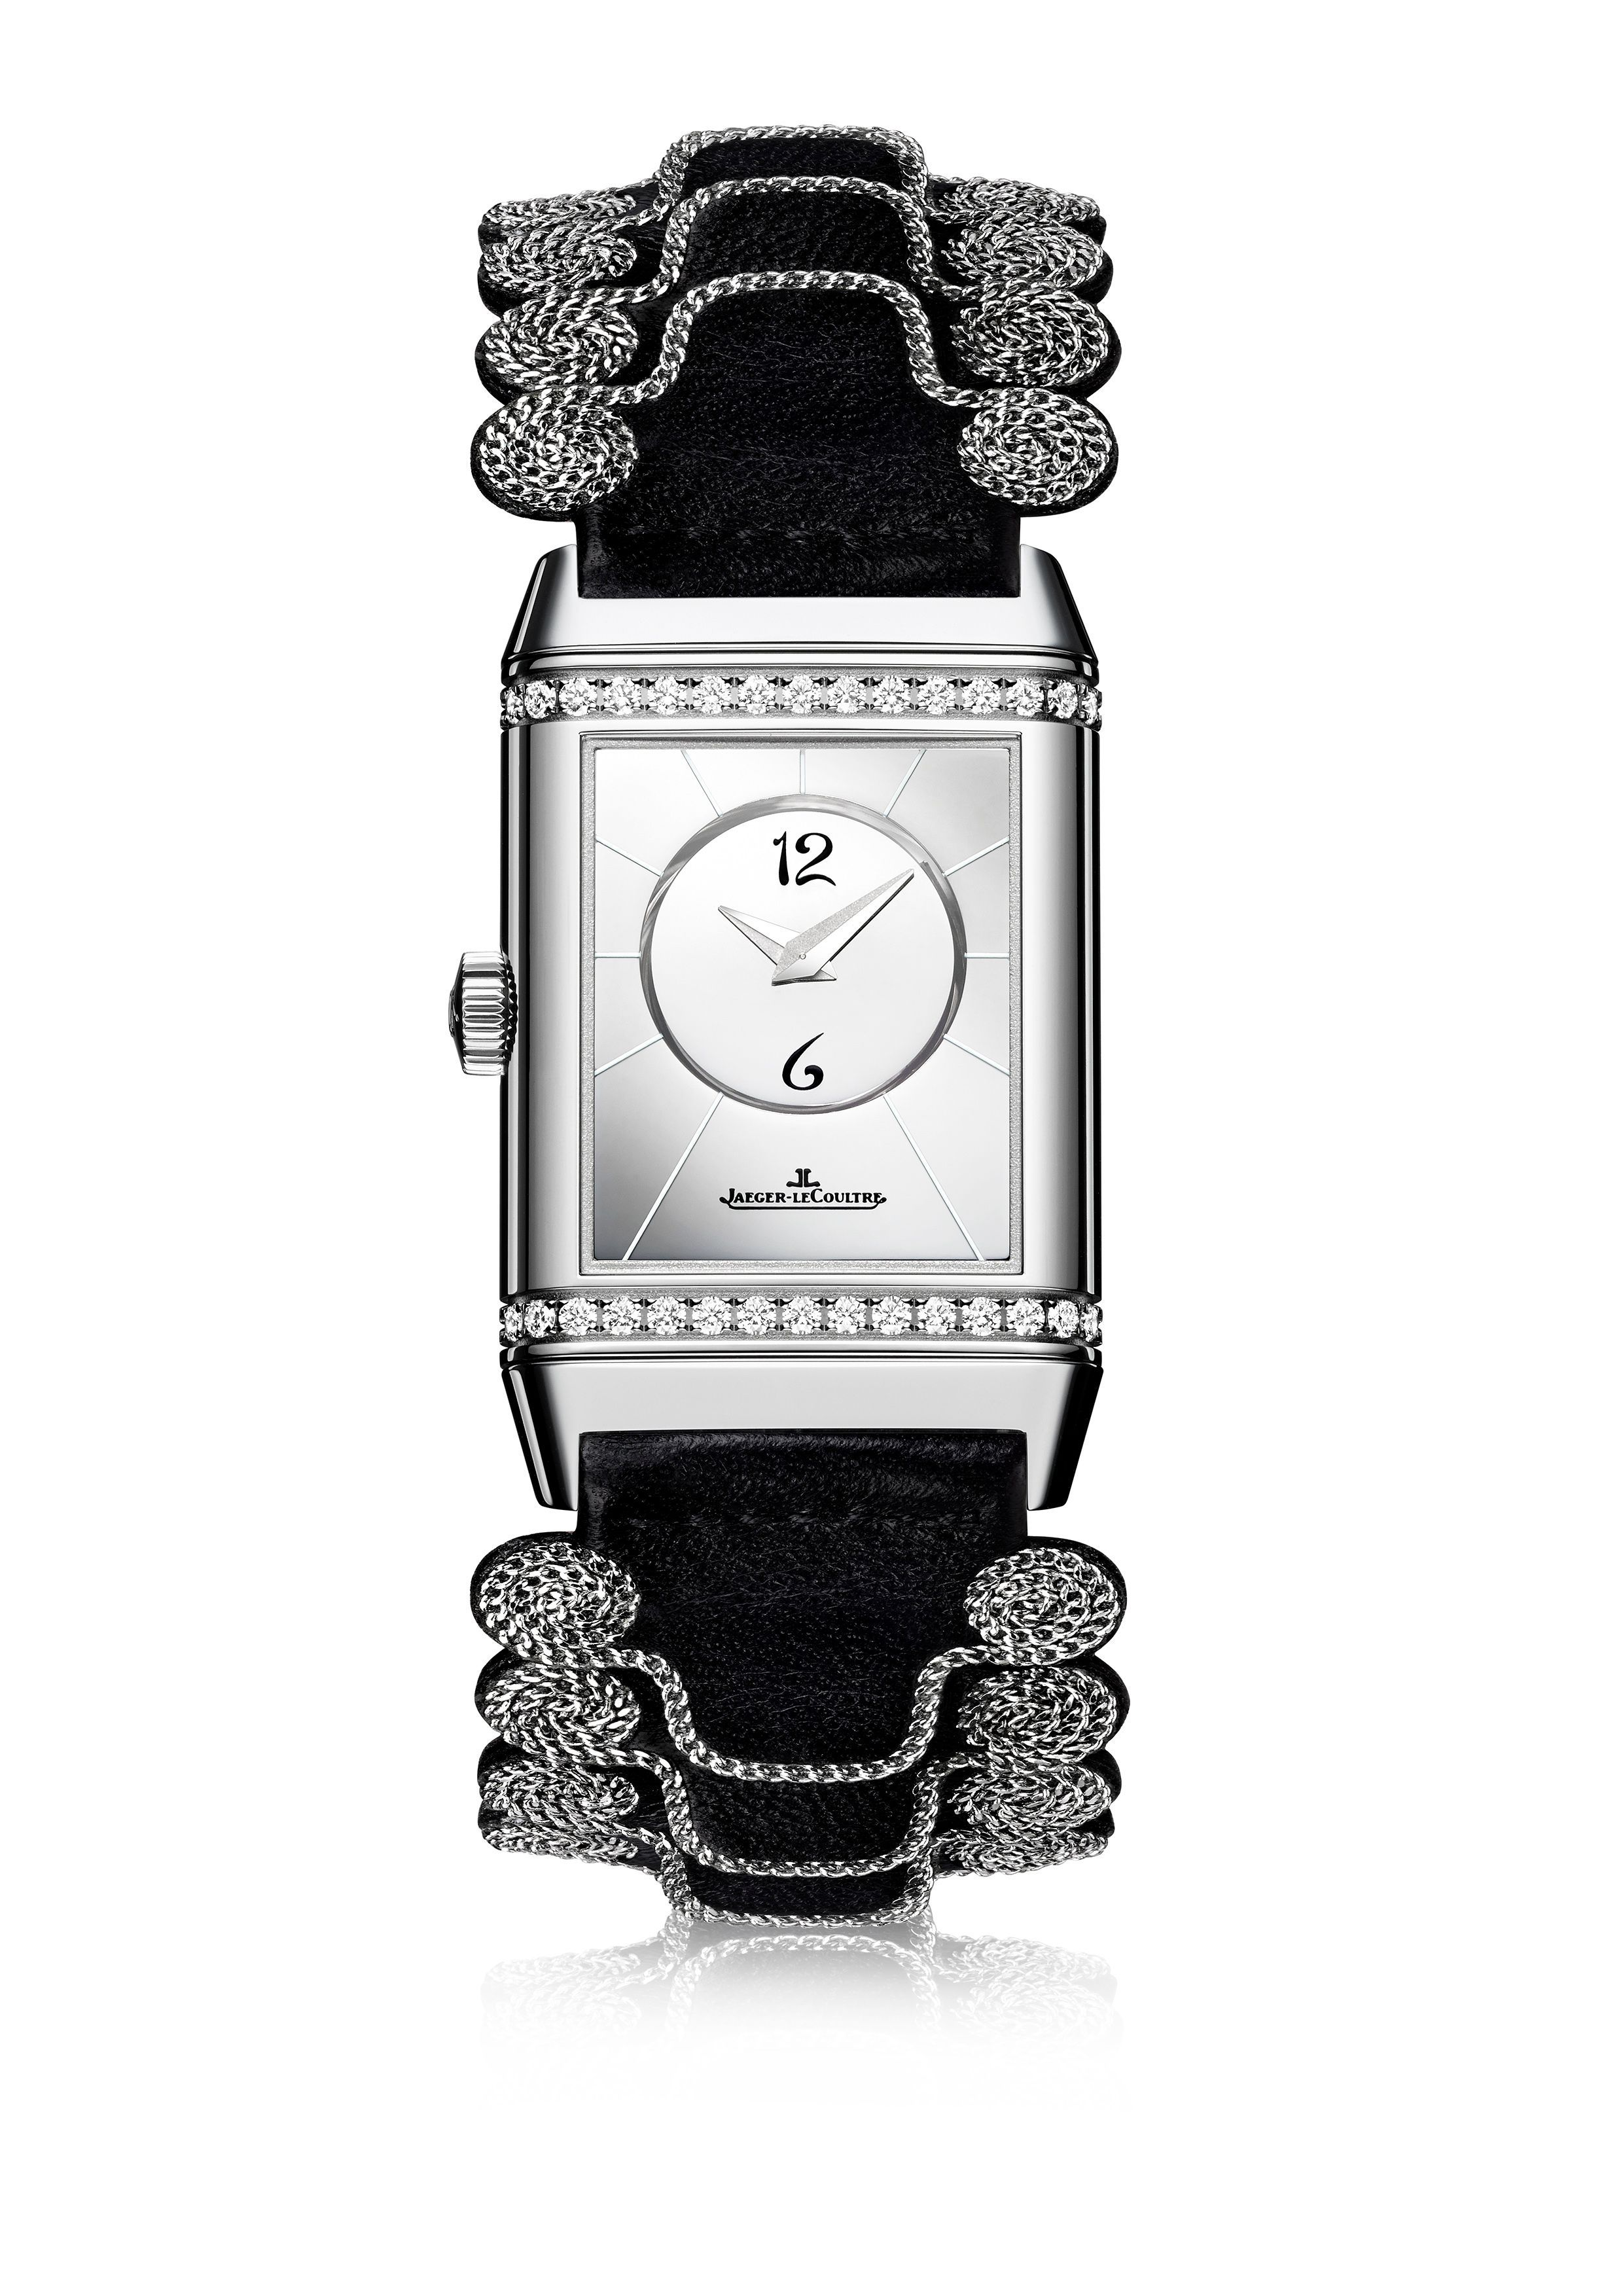 Reverso Classic Duetto_Officer strap and Applicollé Miroir dial by Christian Louboutin_BLACK